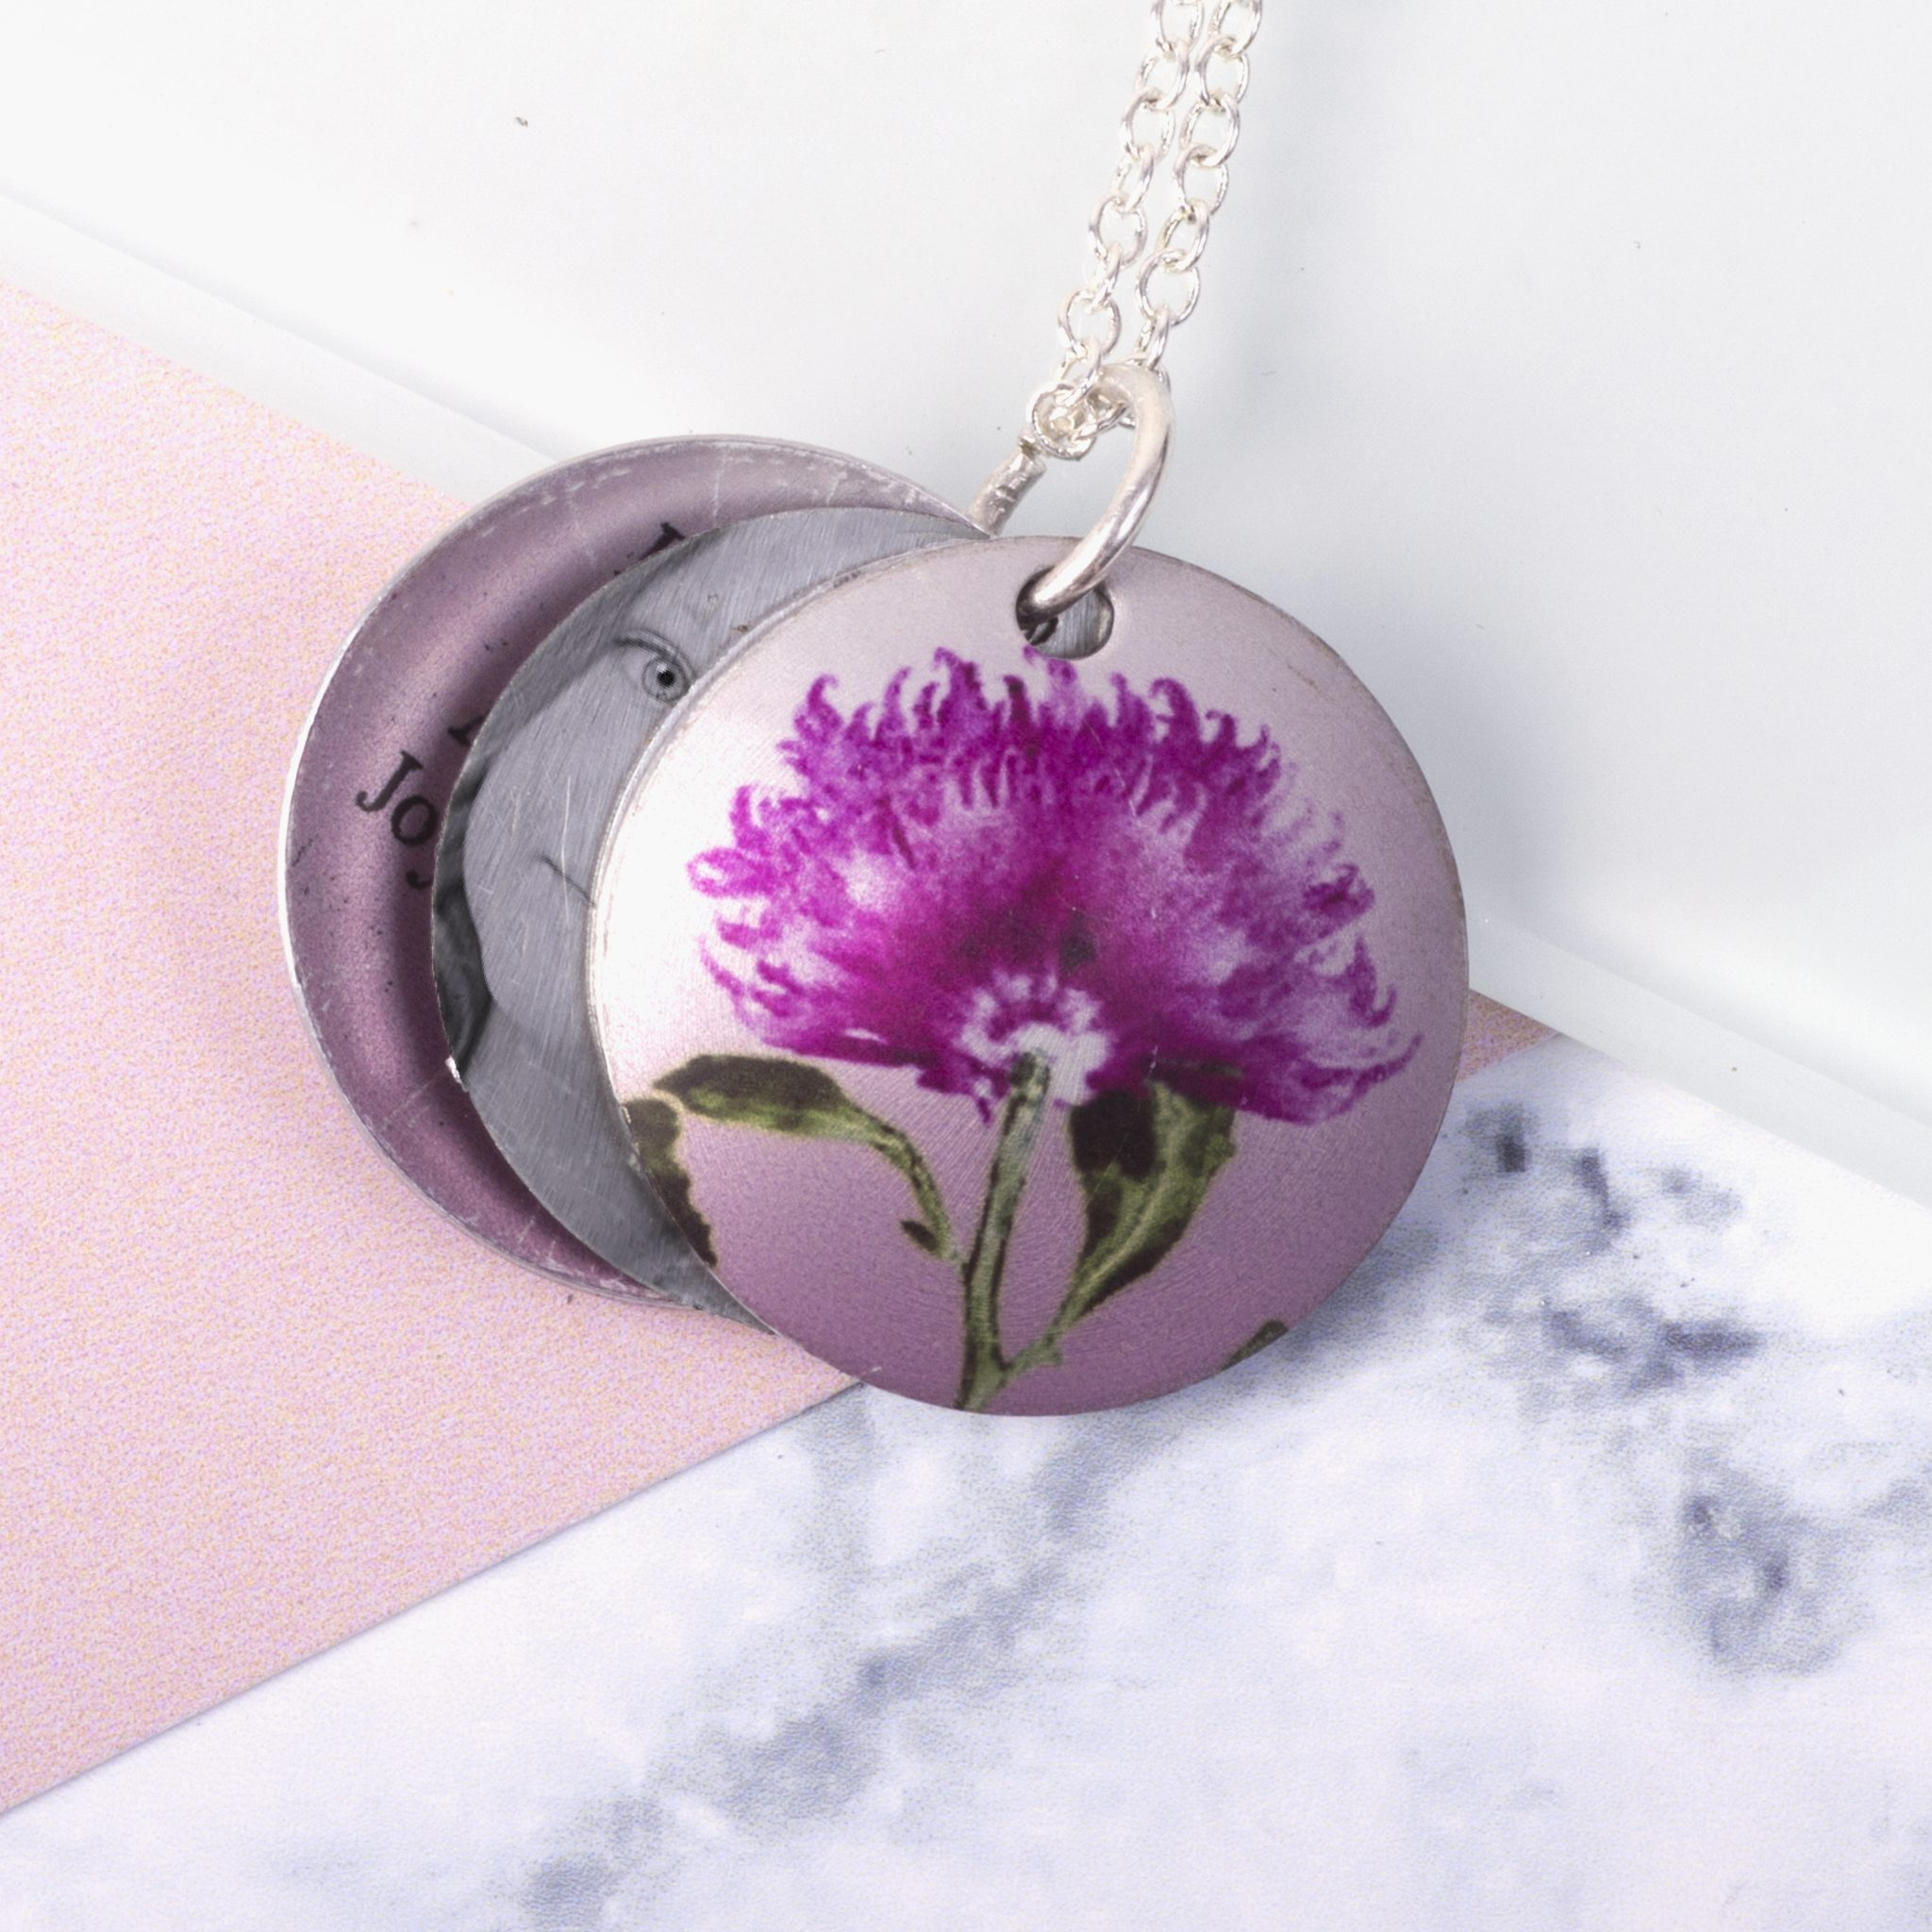 November Chrysanthemum Birth Flower, Personalised Photo Locket Necklace Gift For Her, Beautiful Floral Pendant